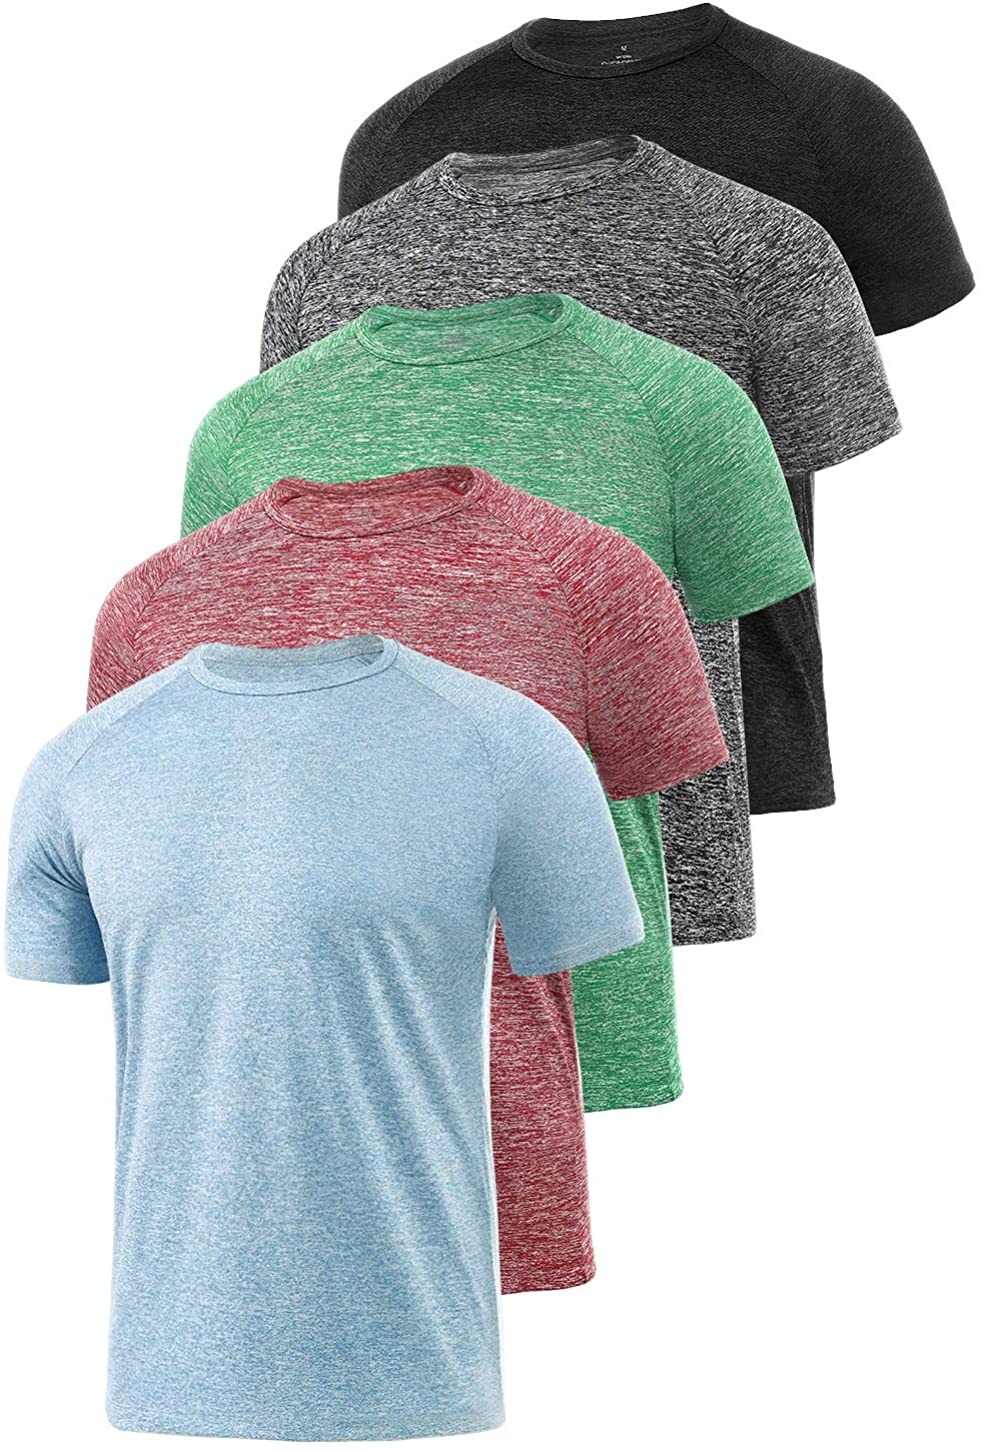 Xelky 4-5 Pack Men's 35% OFF Dry Fit Indefinitely Moisture Shirt Wicking T Athletic